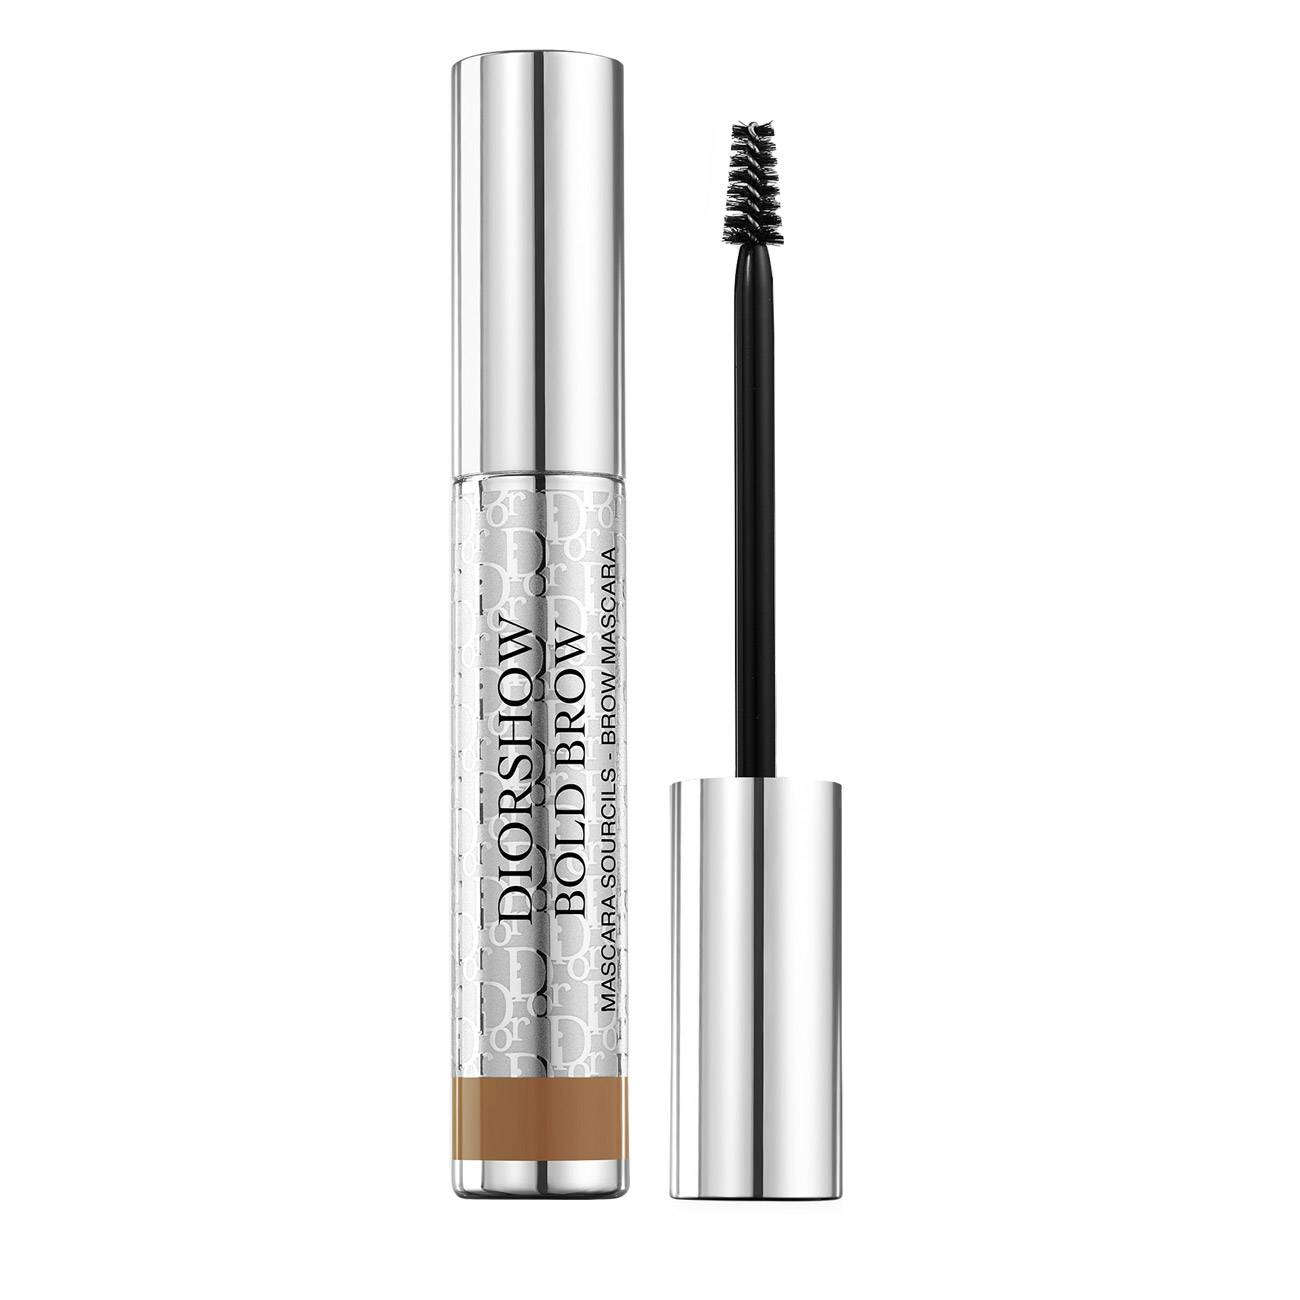 DIORSHOW BOLD BROW - 5 ml 021-Medium imagine produs